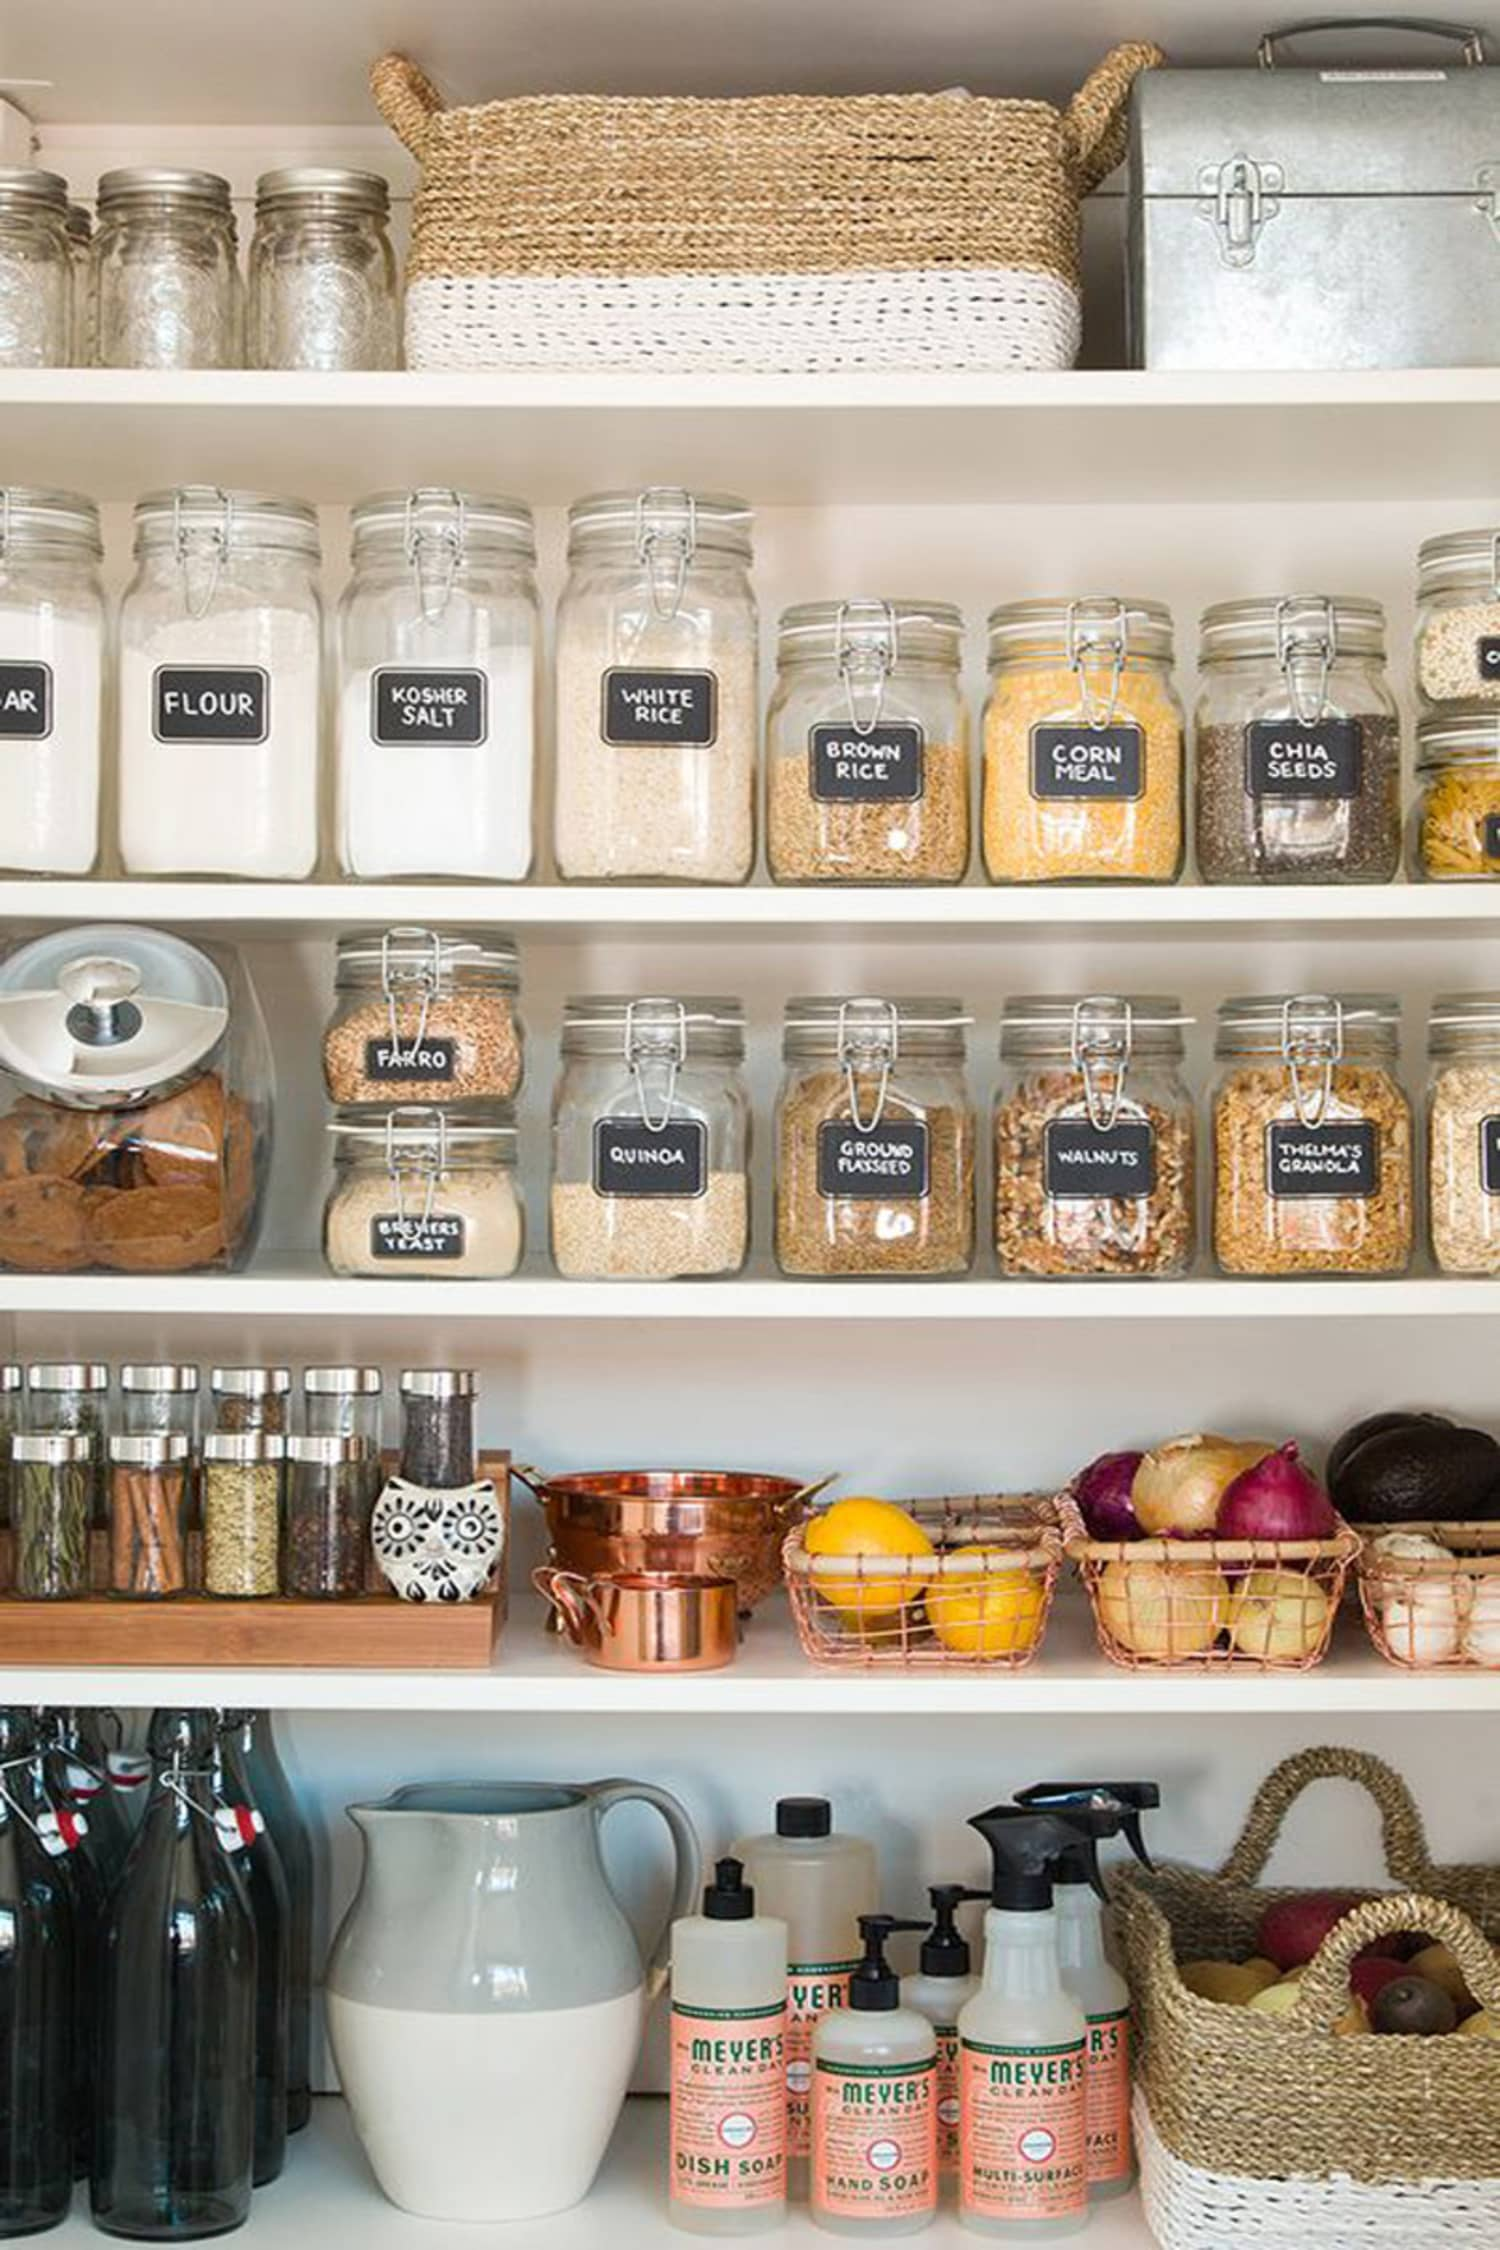 11 Surprising Uses For Things You Have In Your Pantry Right Now